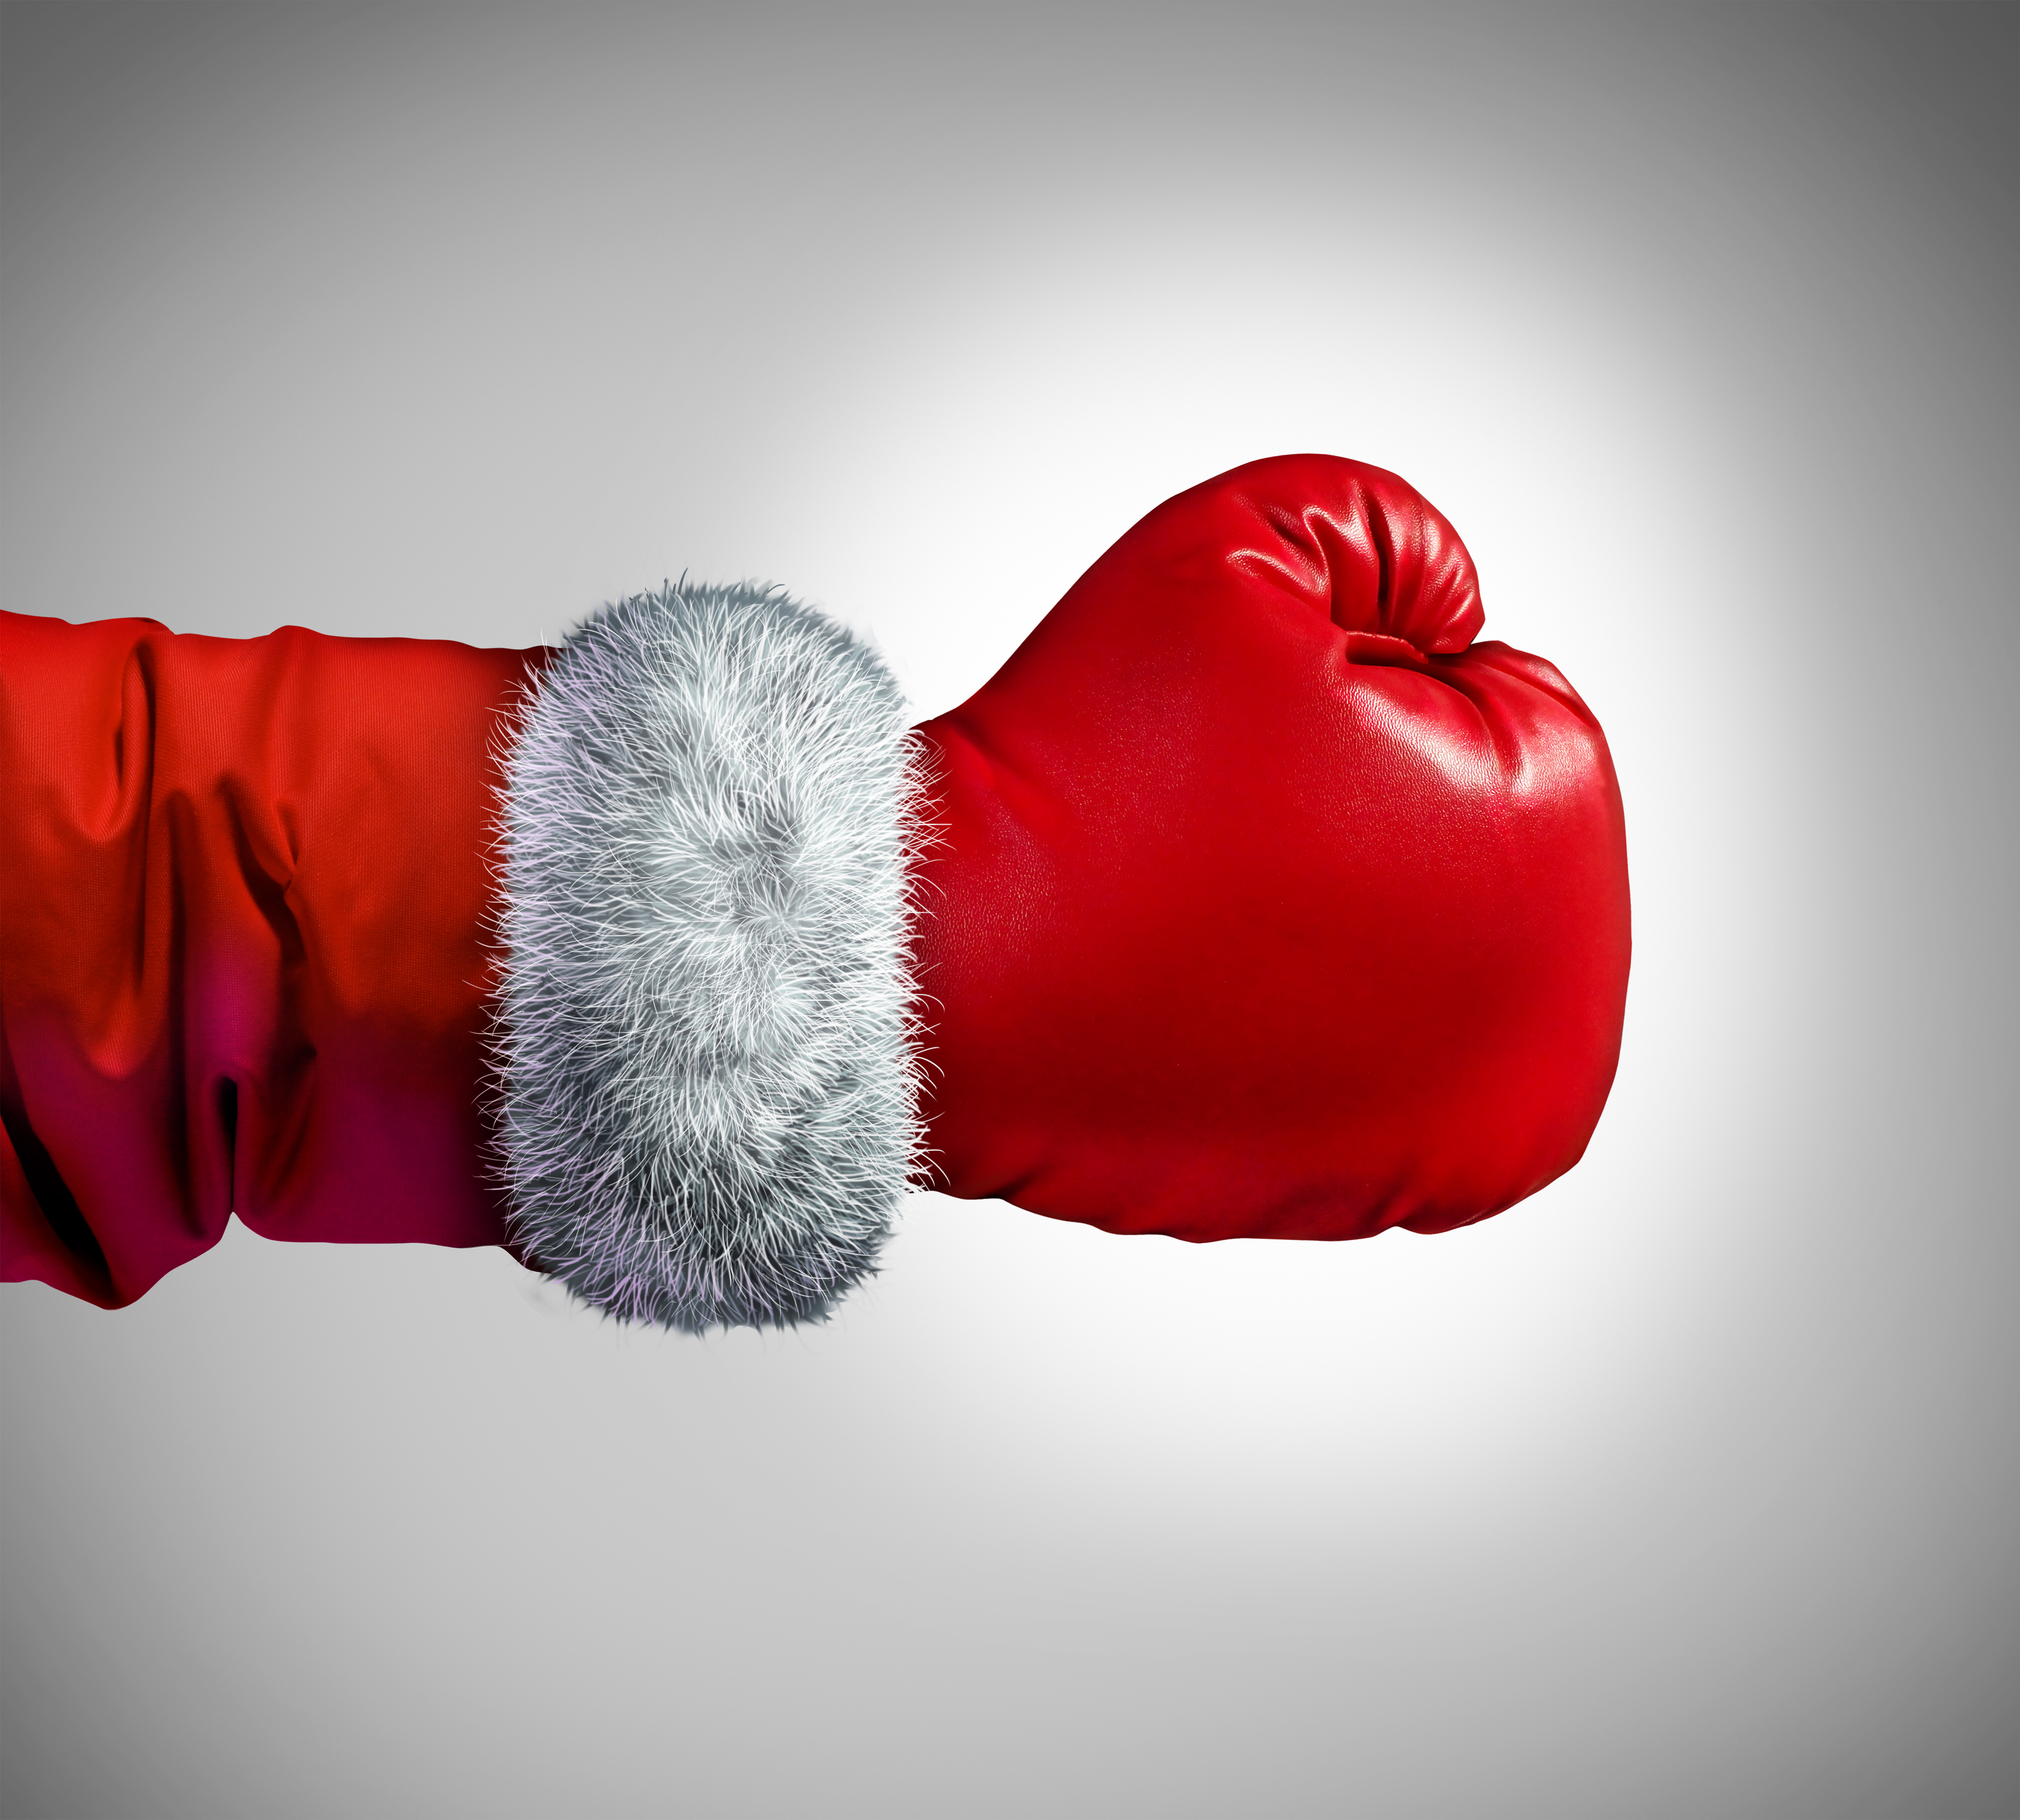 A boxing glove on the arm of someone wearing a Santa suit.